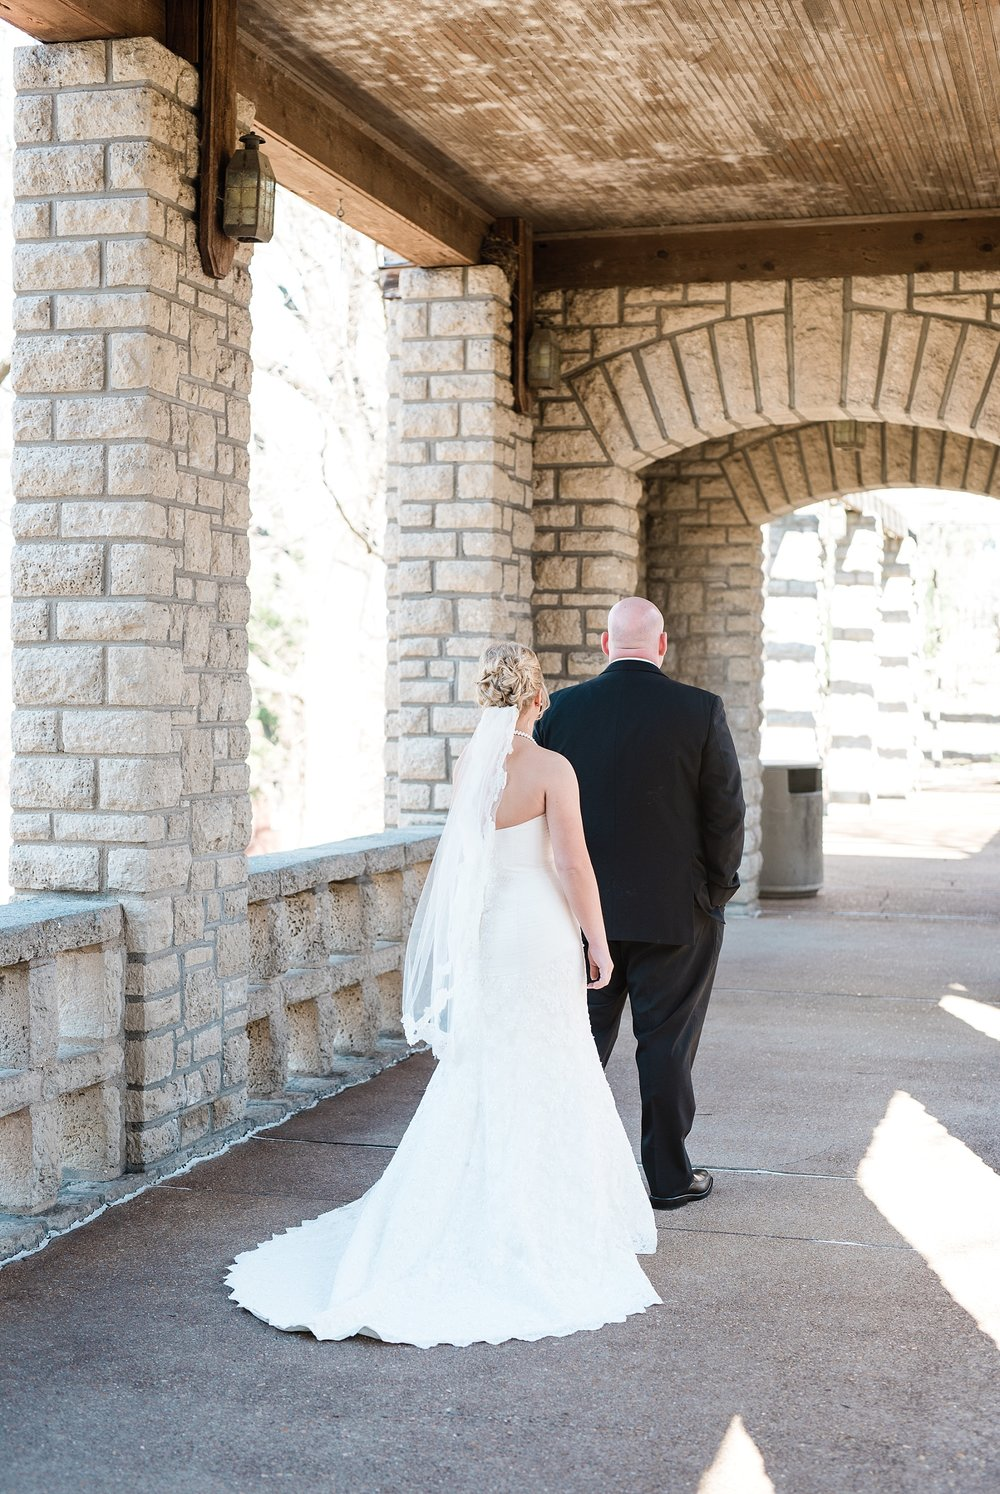 Light and Airy Spring Wedding Downtown Jefferson City Missouri State Capitol Millbottom_0006.jpg